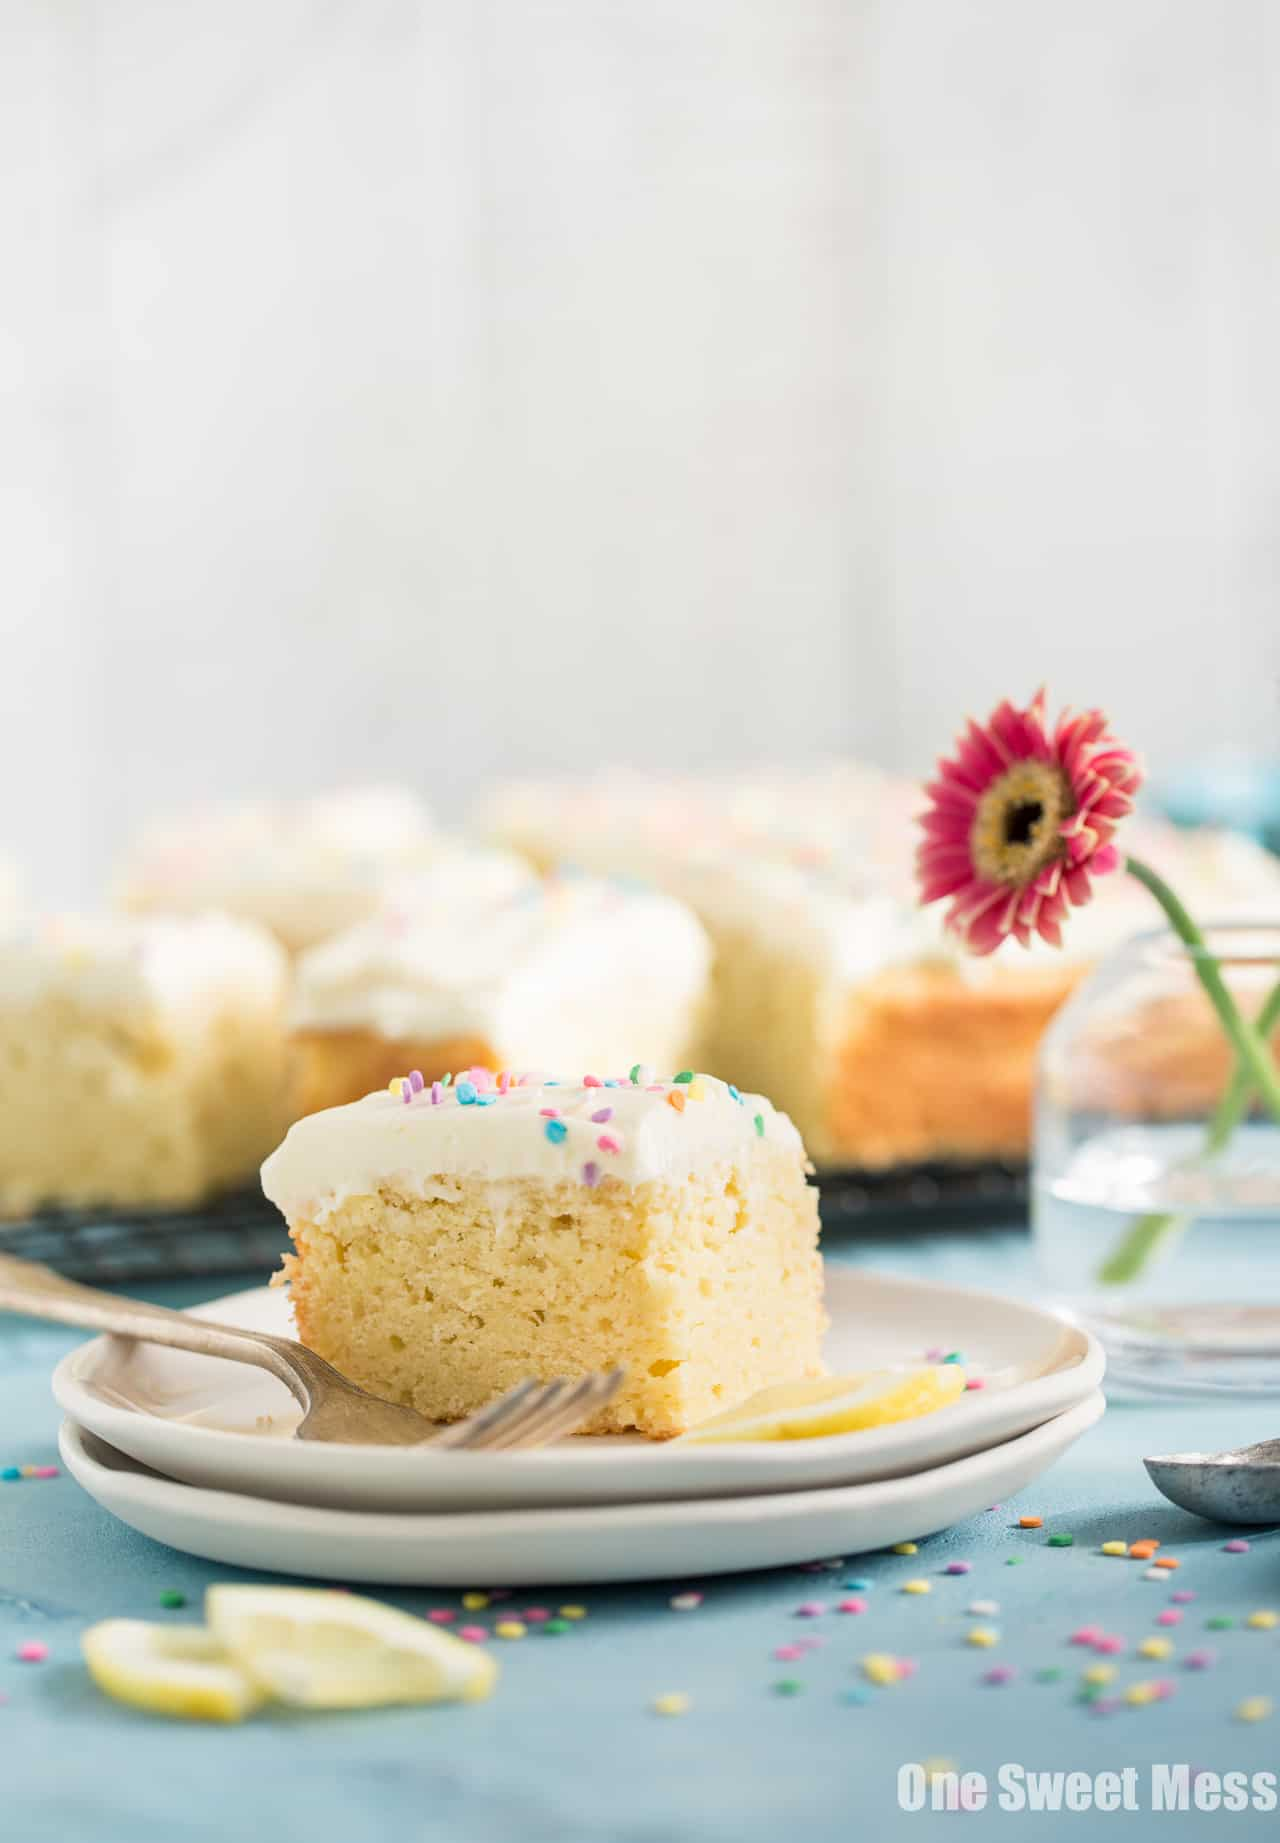 Gluten-Free Lemon Buttermilk Cake with Cream Cheese Frosting